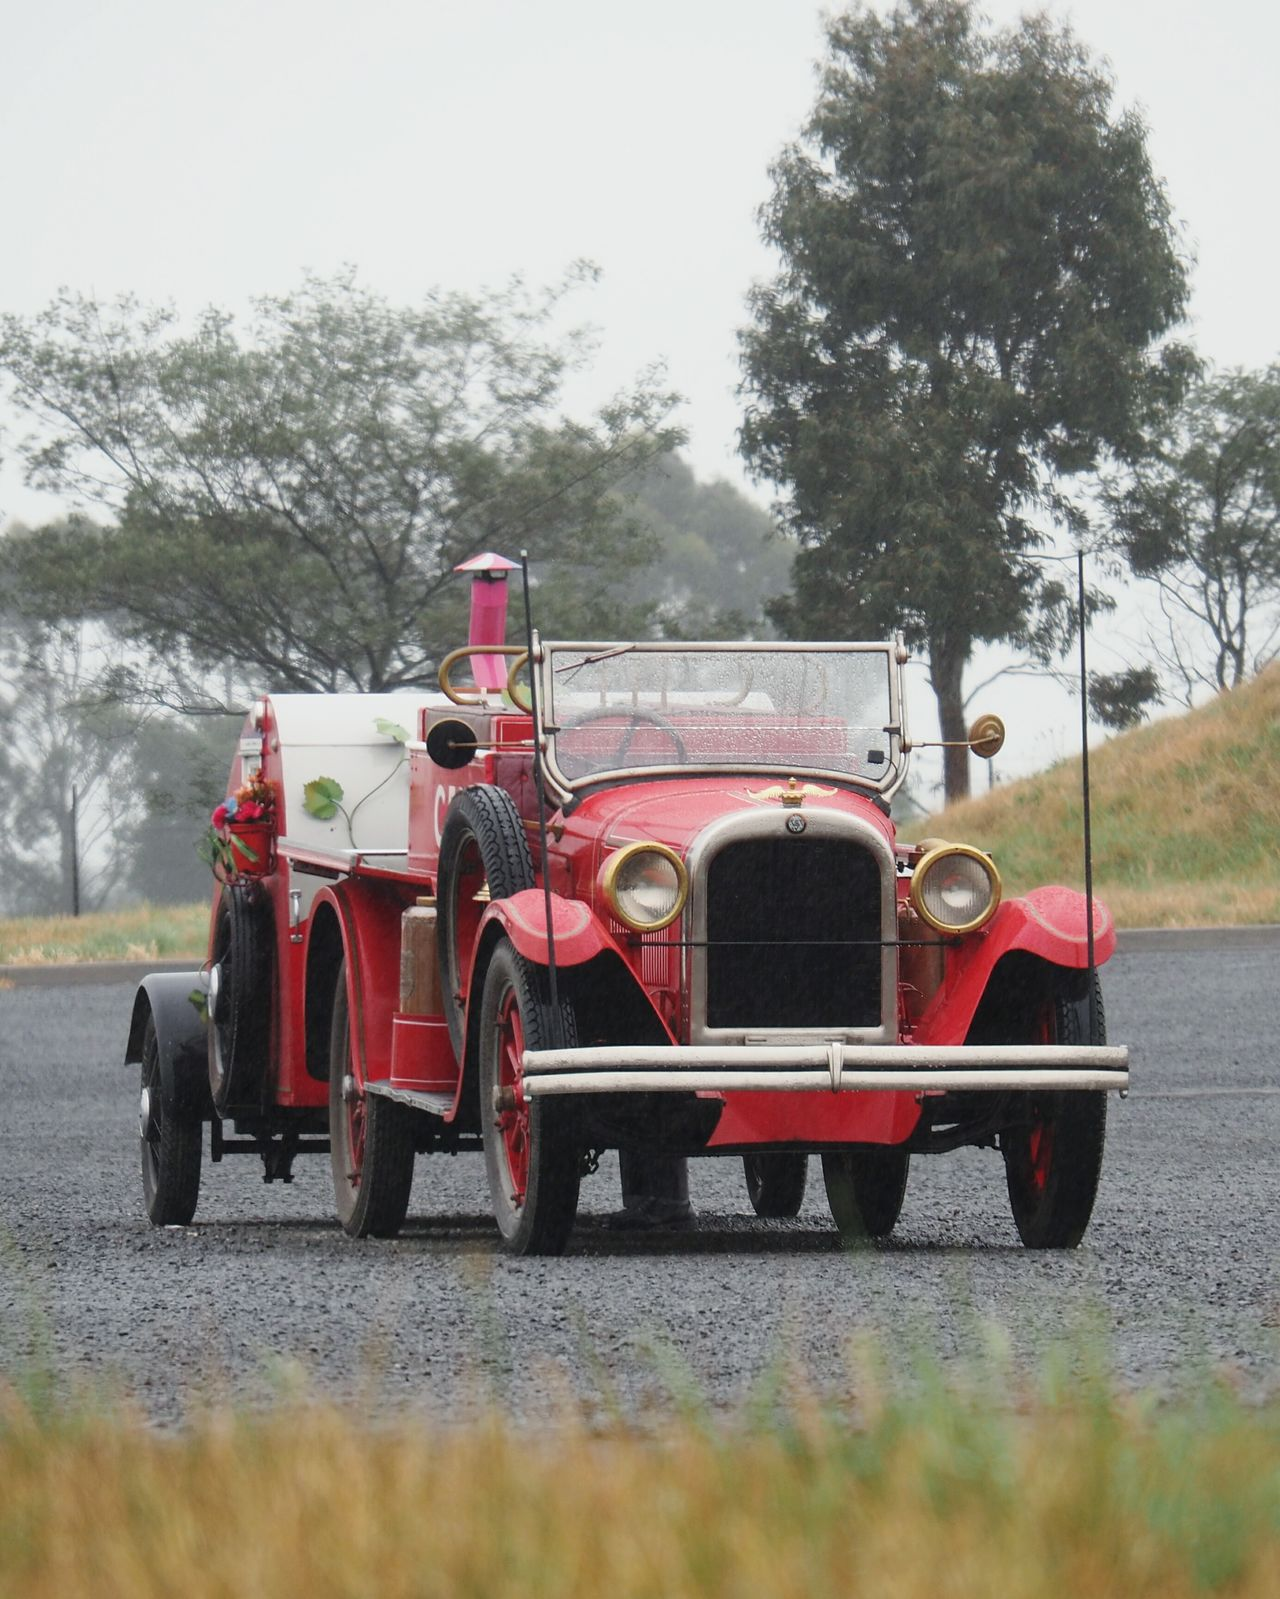 Old Country Fire Authority (CFA) car at Victoria Australia Old-fashioned Mode Of Transport Transportation Outdoors No People Country Fire Authority Cfa Old Car Heritage